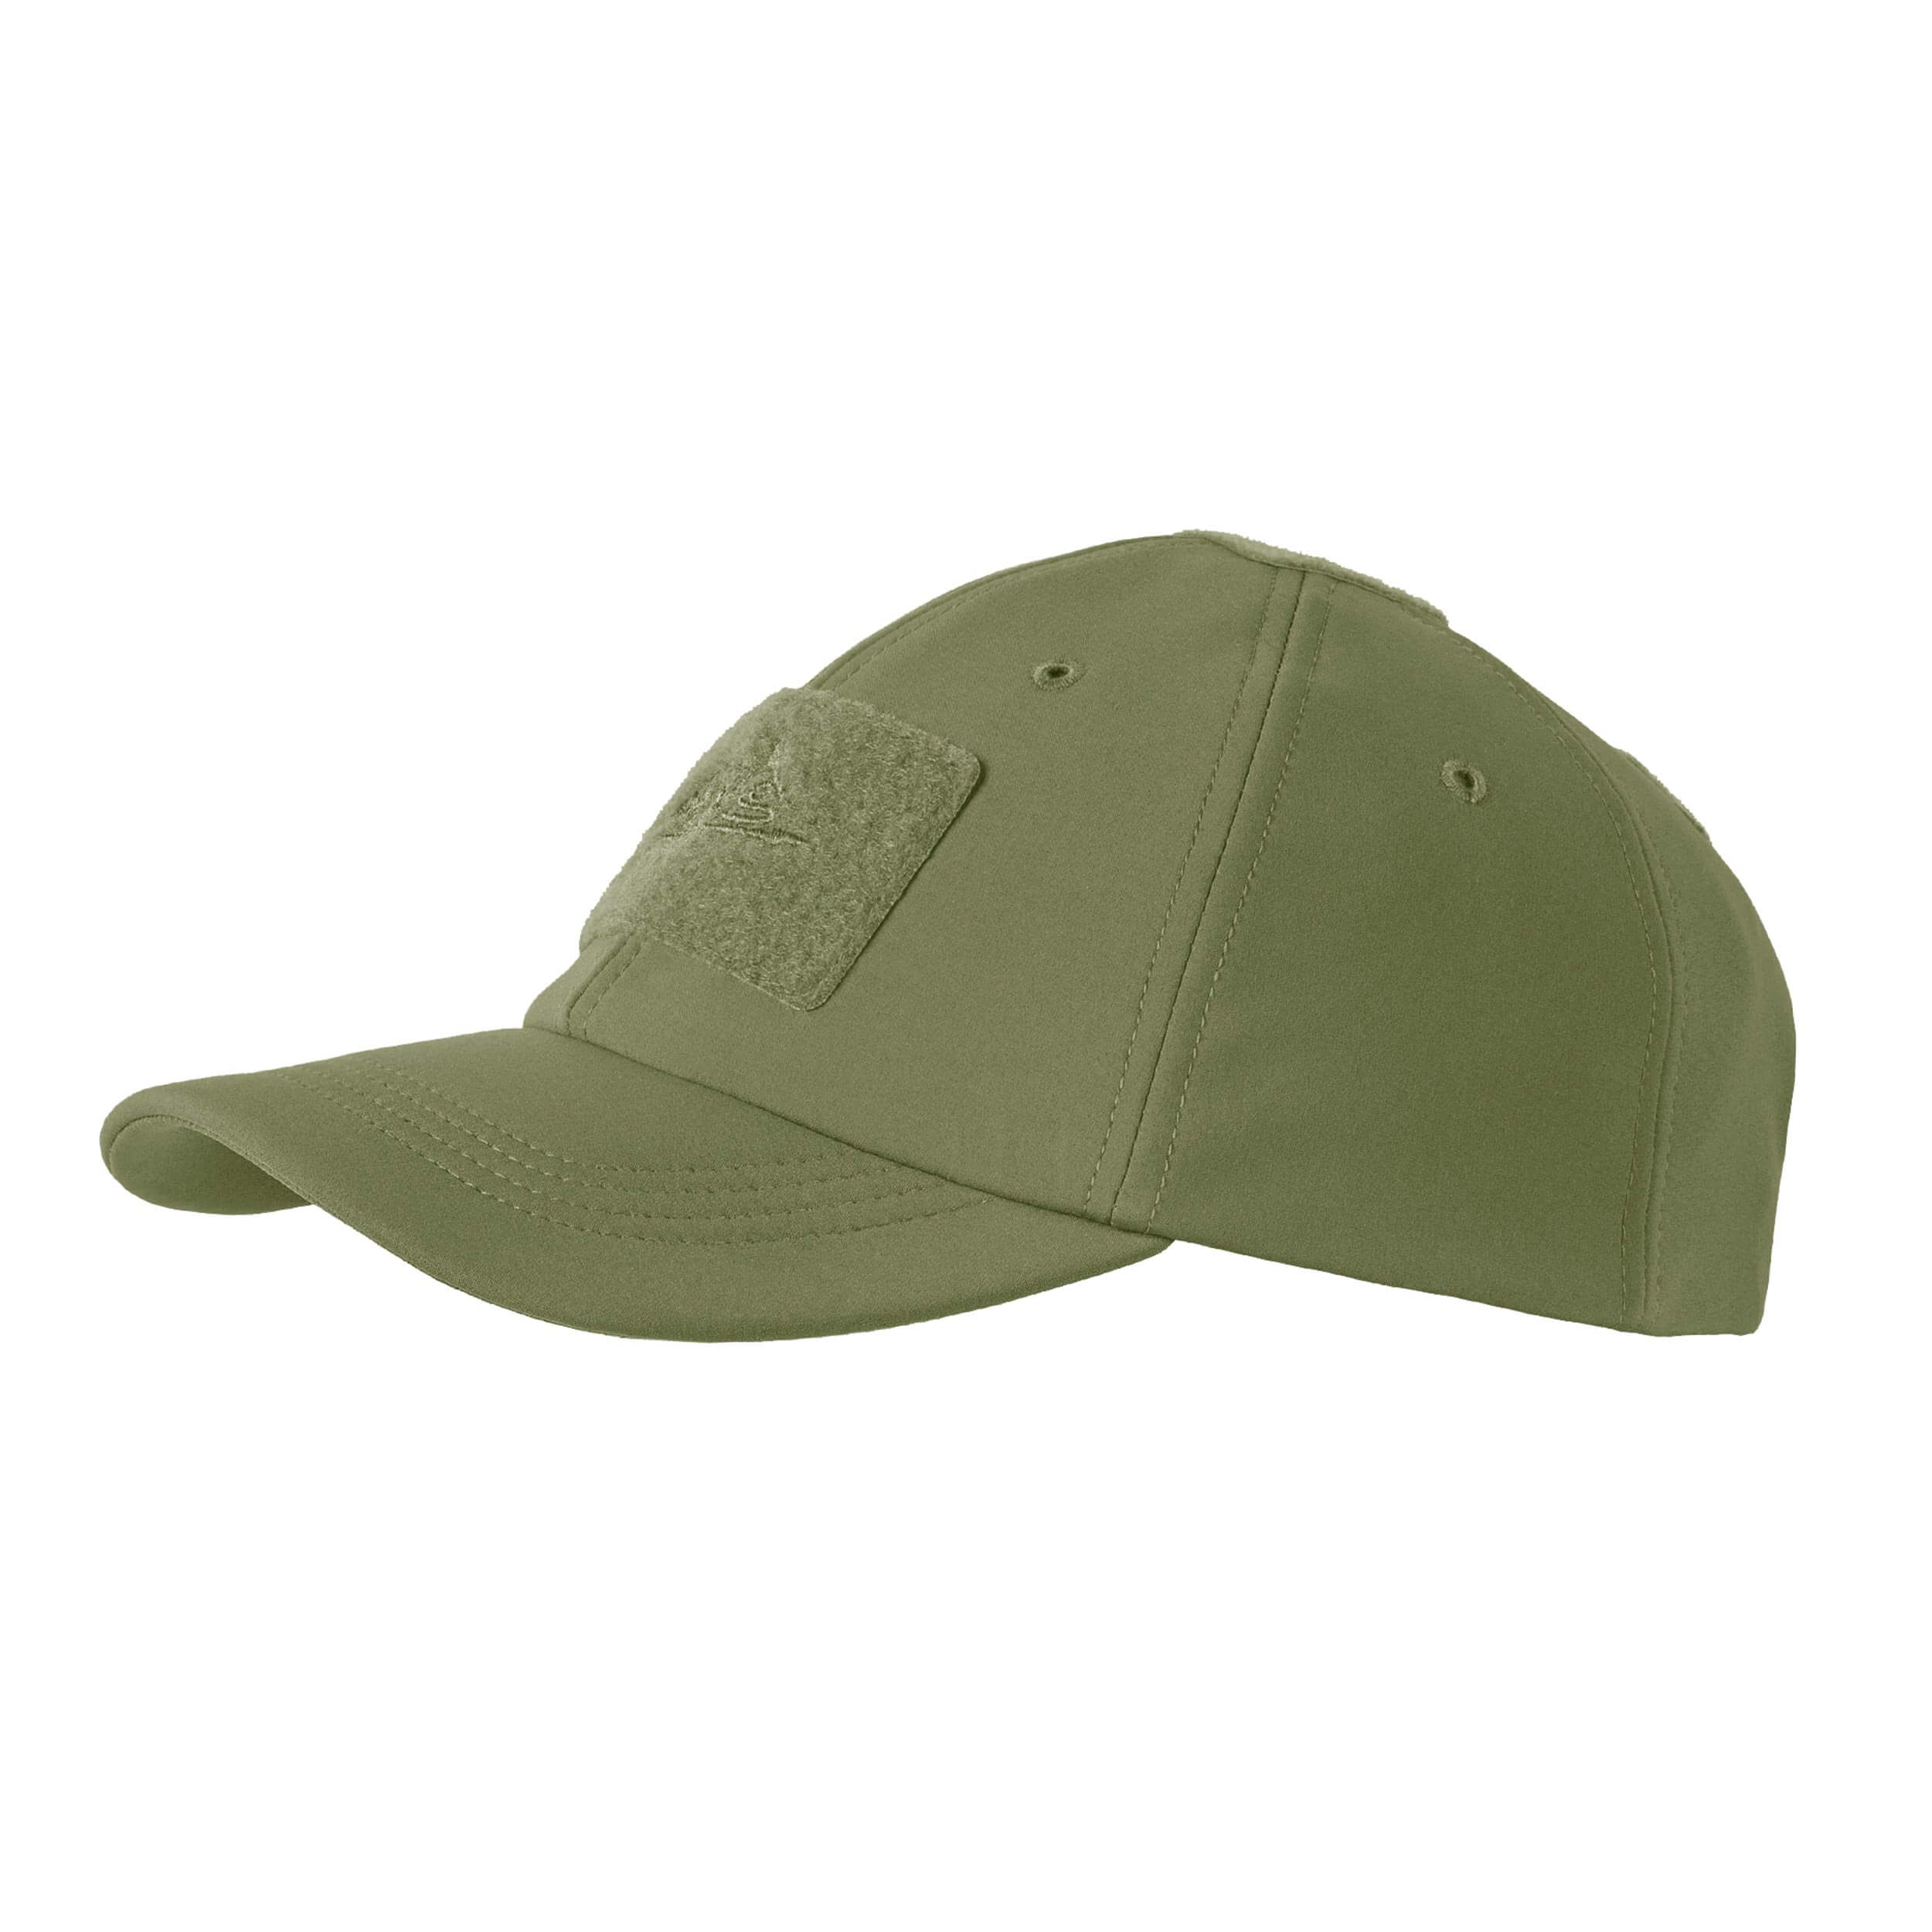 Helikon-Tex BBC Winter Cap -Shark Skin- Olive Green